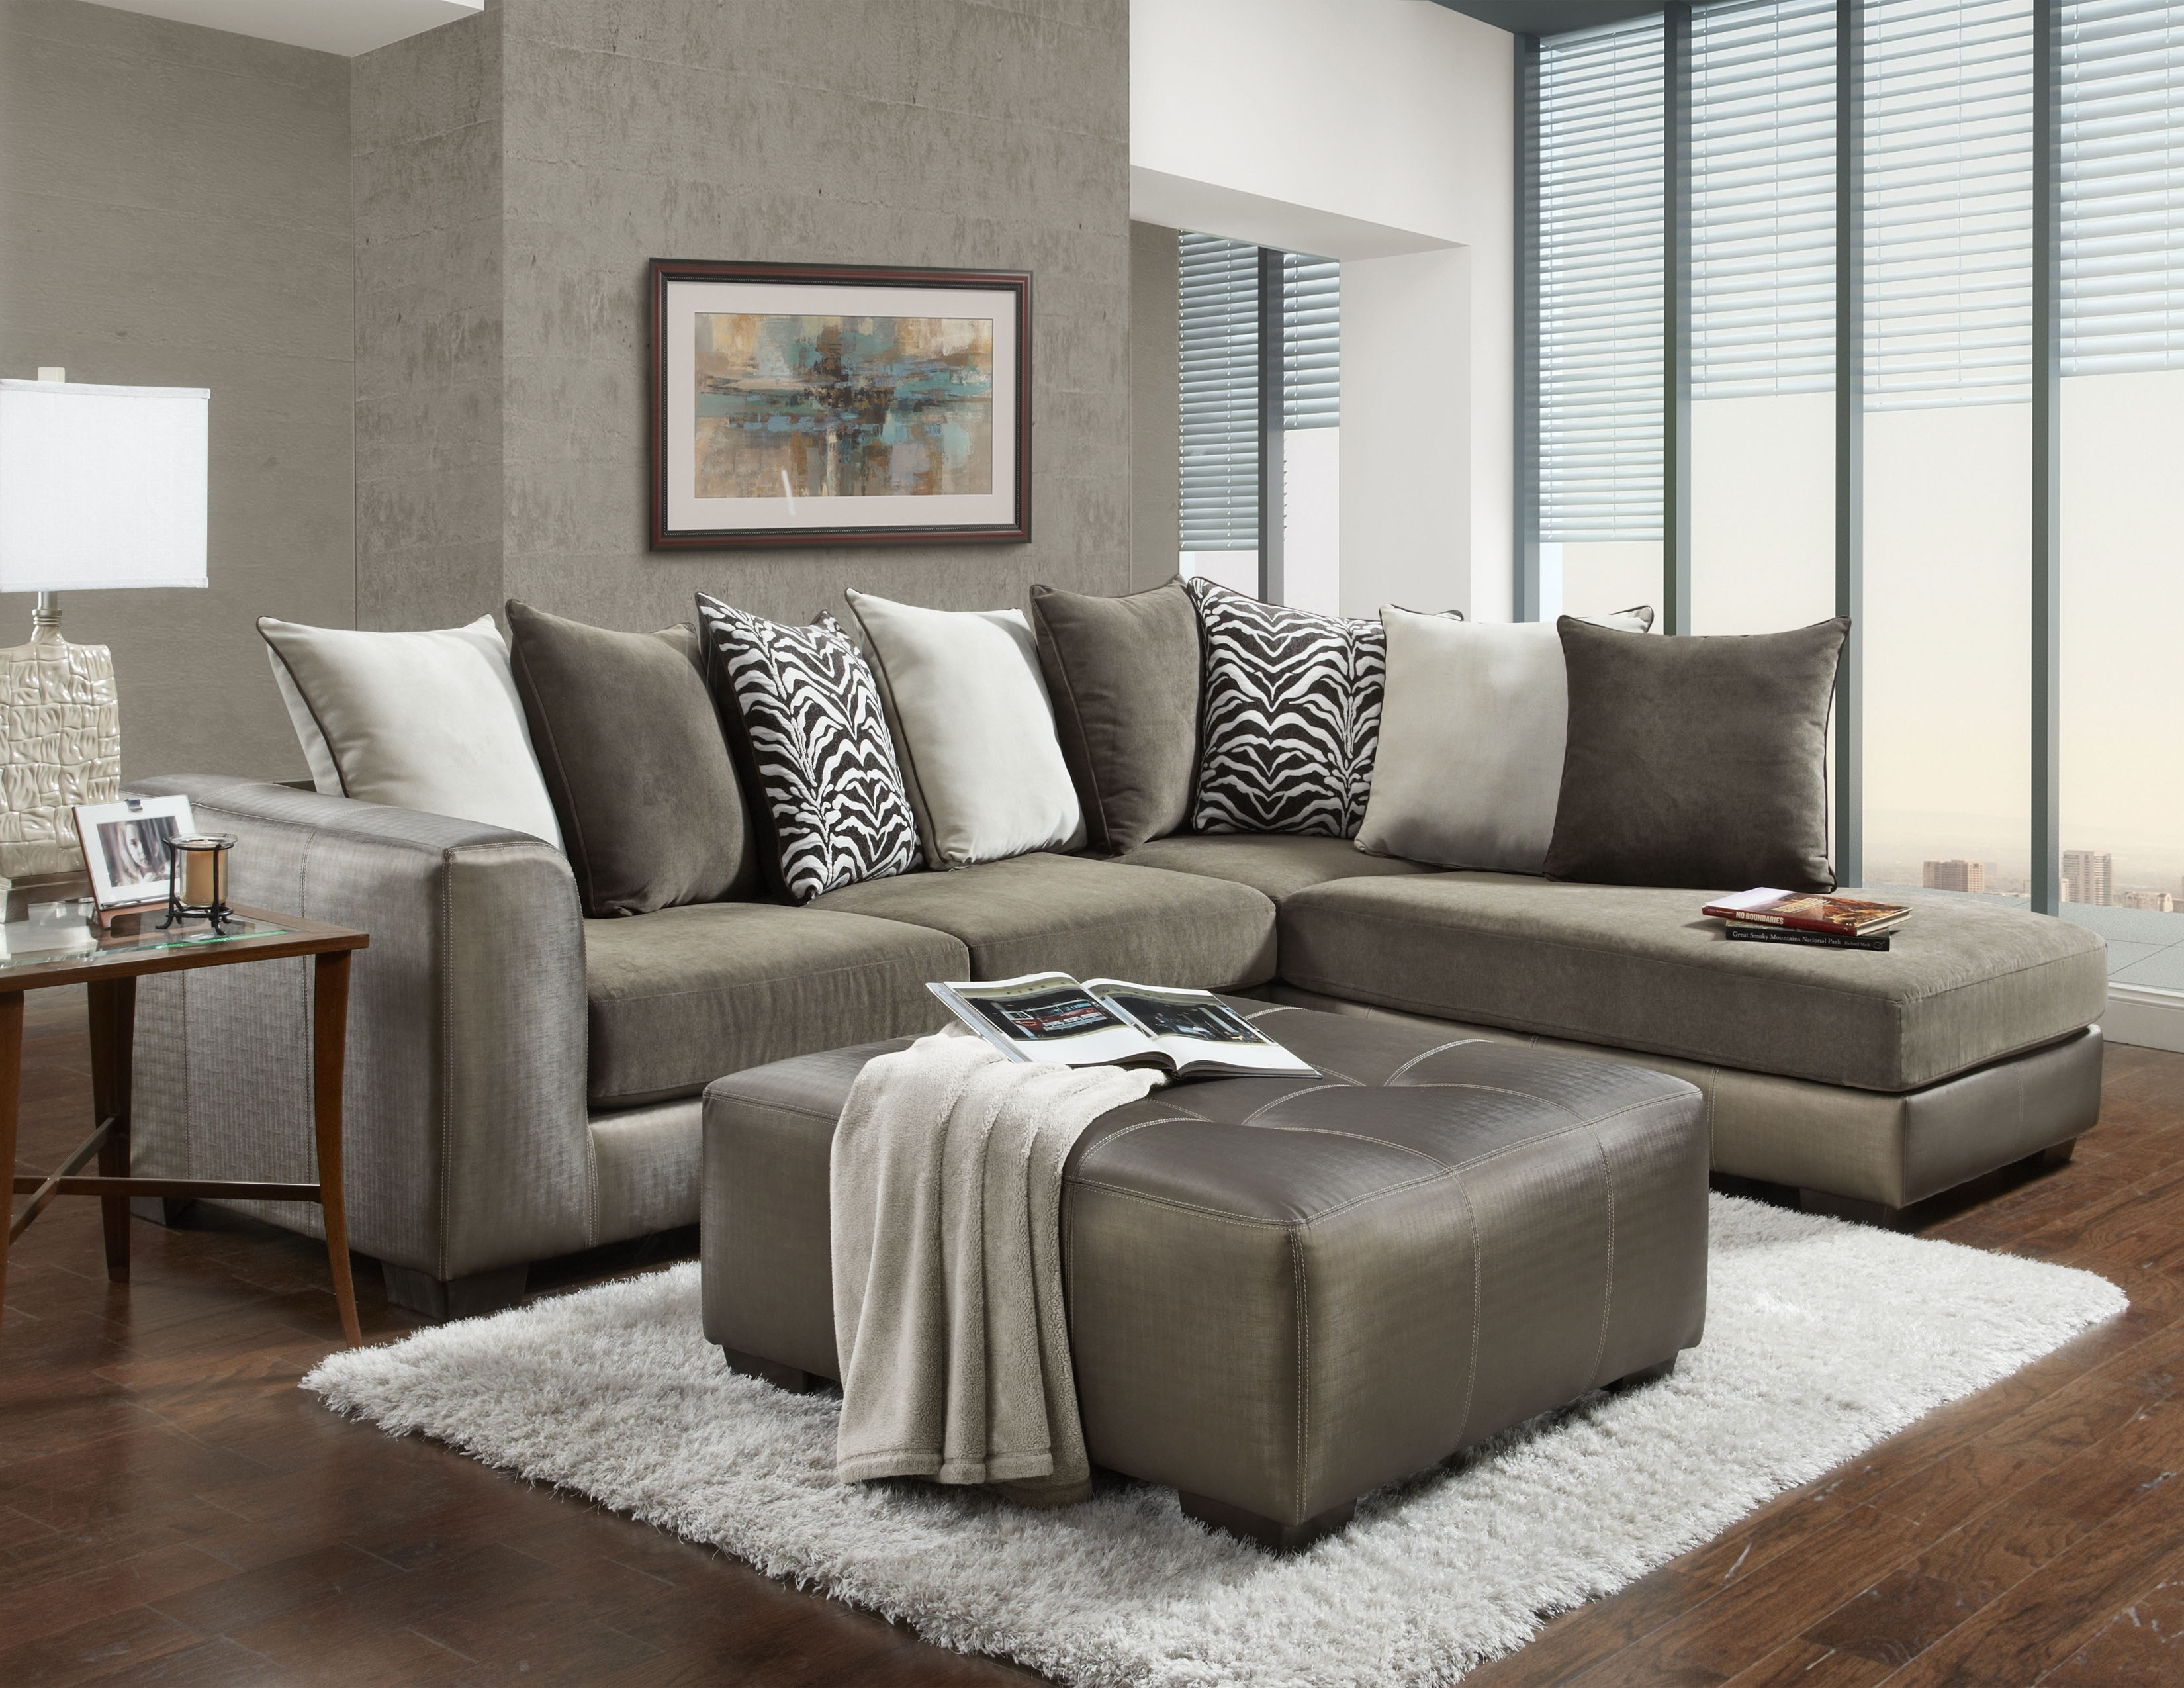 8327B917-83B8-4007-Af60-Cc227977C29B (3300×2550) | Living Room in Kanes Sectional Sofas